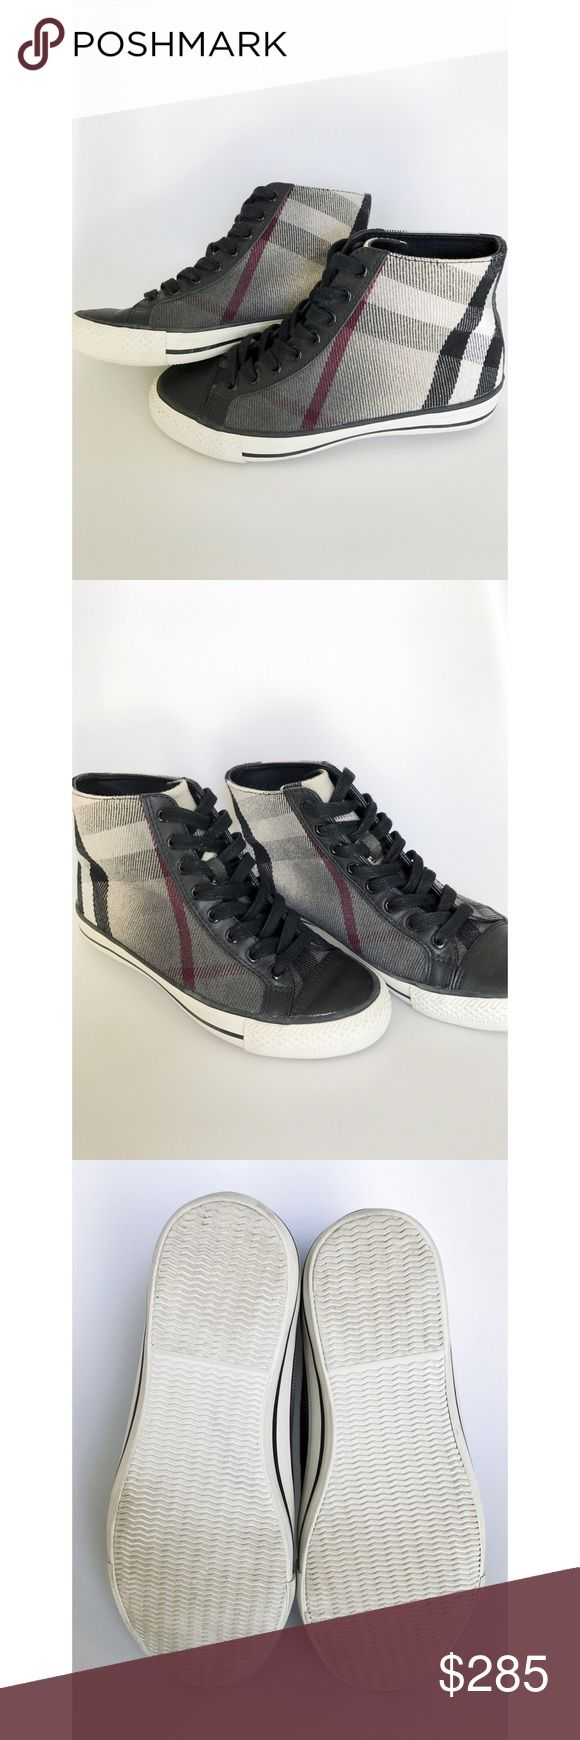 "Woman's Burberry High Top Sneakers Truly worn maybe twice. I do not have the dust bag or box. Please see last pic for authenticity code. The main shoe is canvas and is surrounded by genuine leather. The inner sole of the shoe is also leather and stamped ""Burberry"". Size 37 (ladies 7) runs true to size. Burberry Shoes Sneakers"